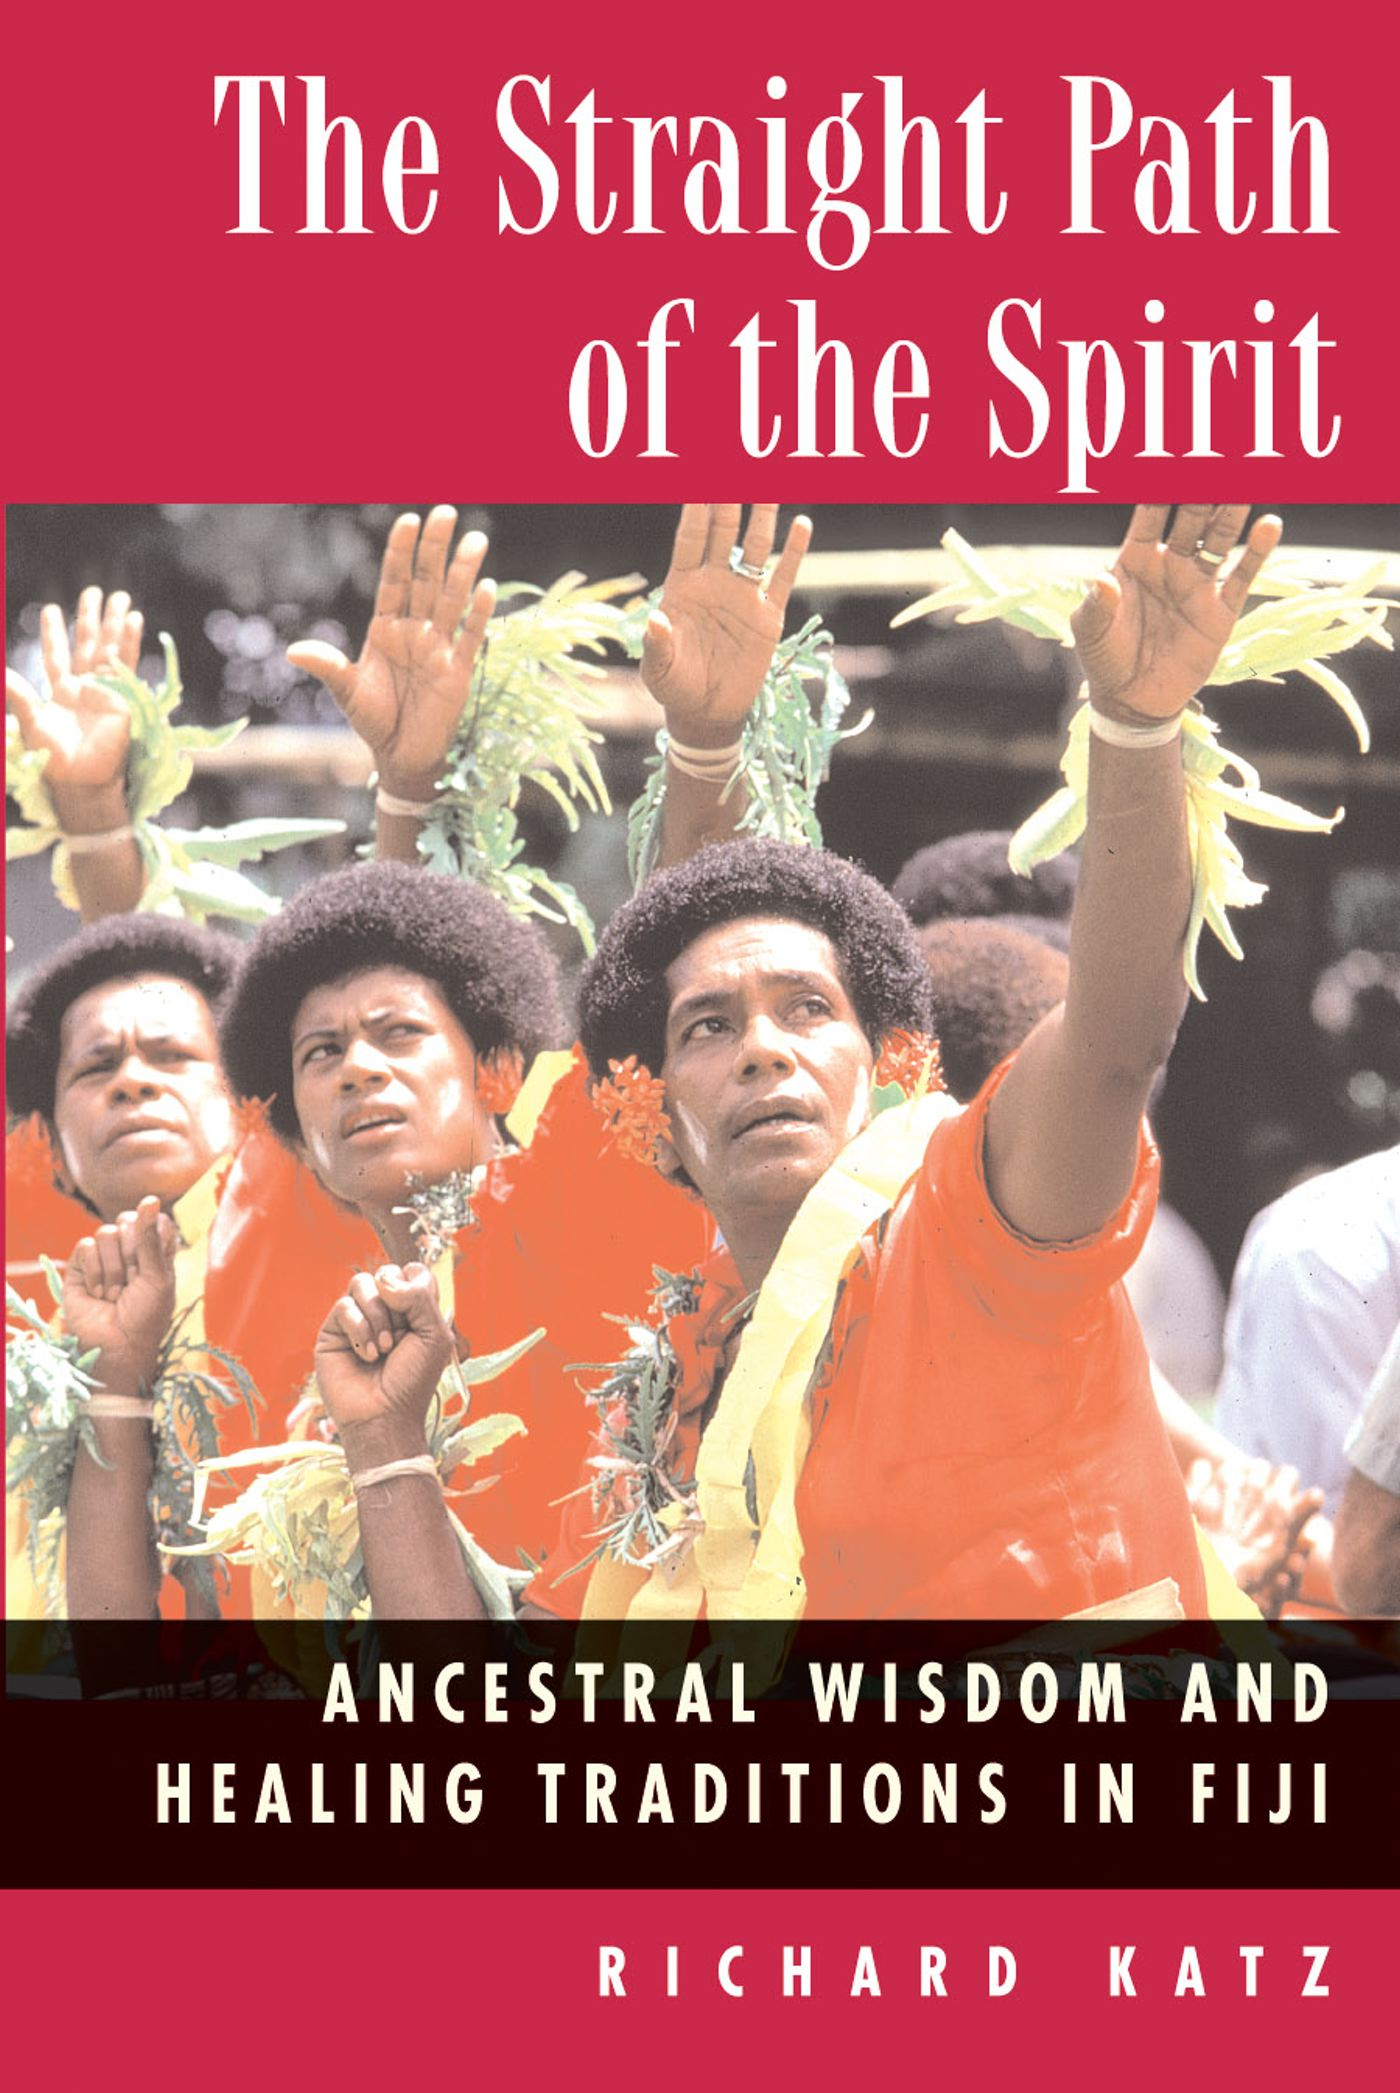 The straight path of the spirit 9780892817672 hr